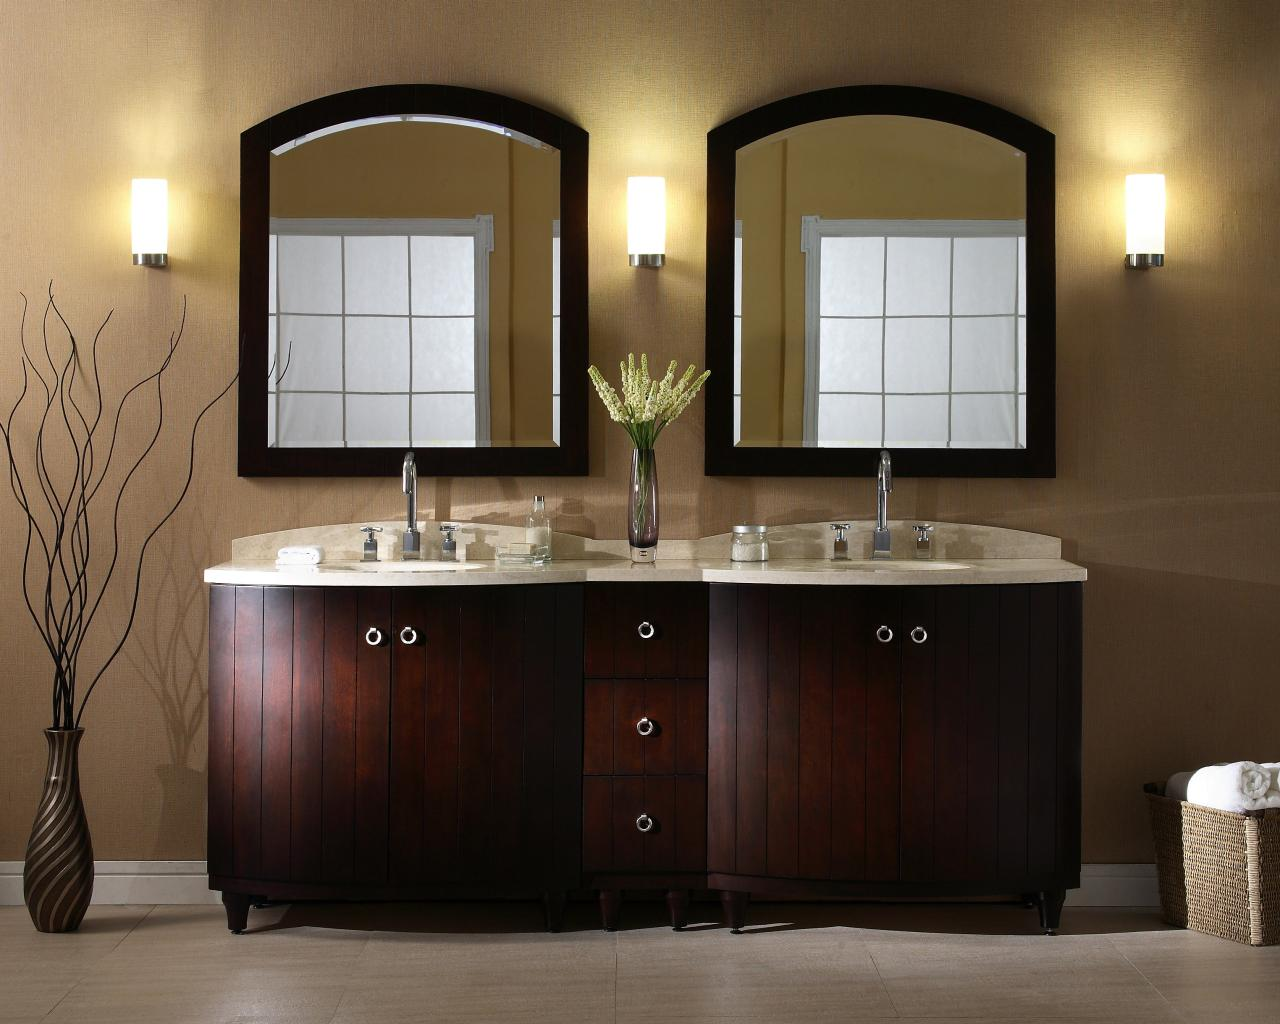 Choosing a bathroom vanity hgtv for Bathroom vanity mirrors